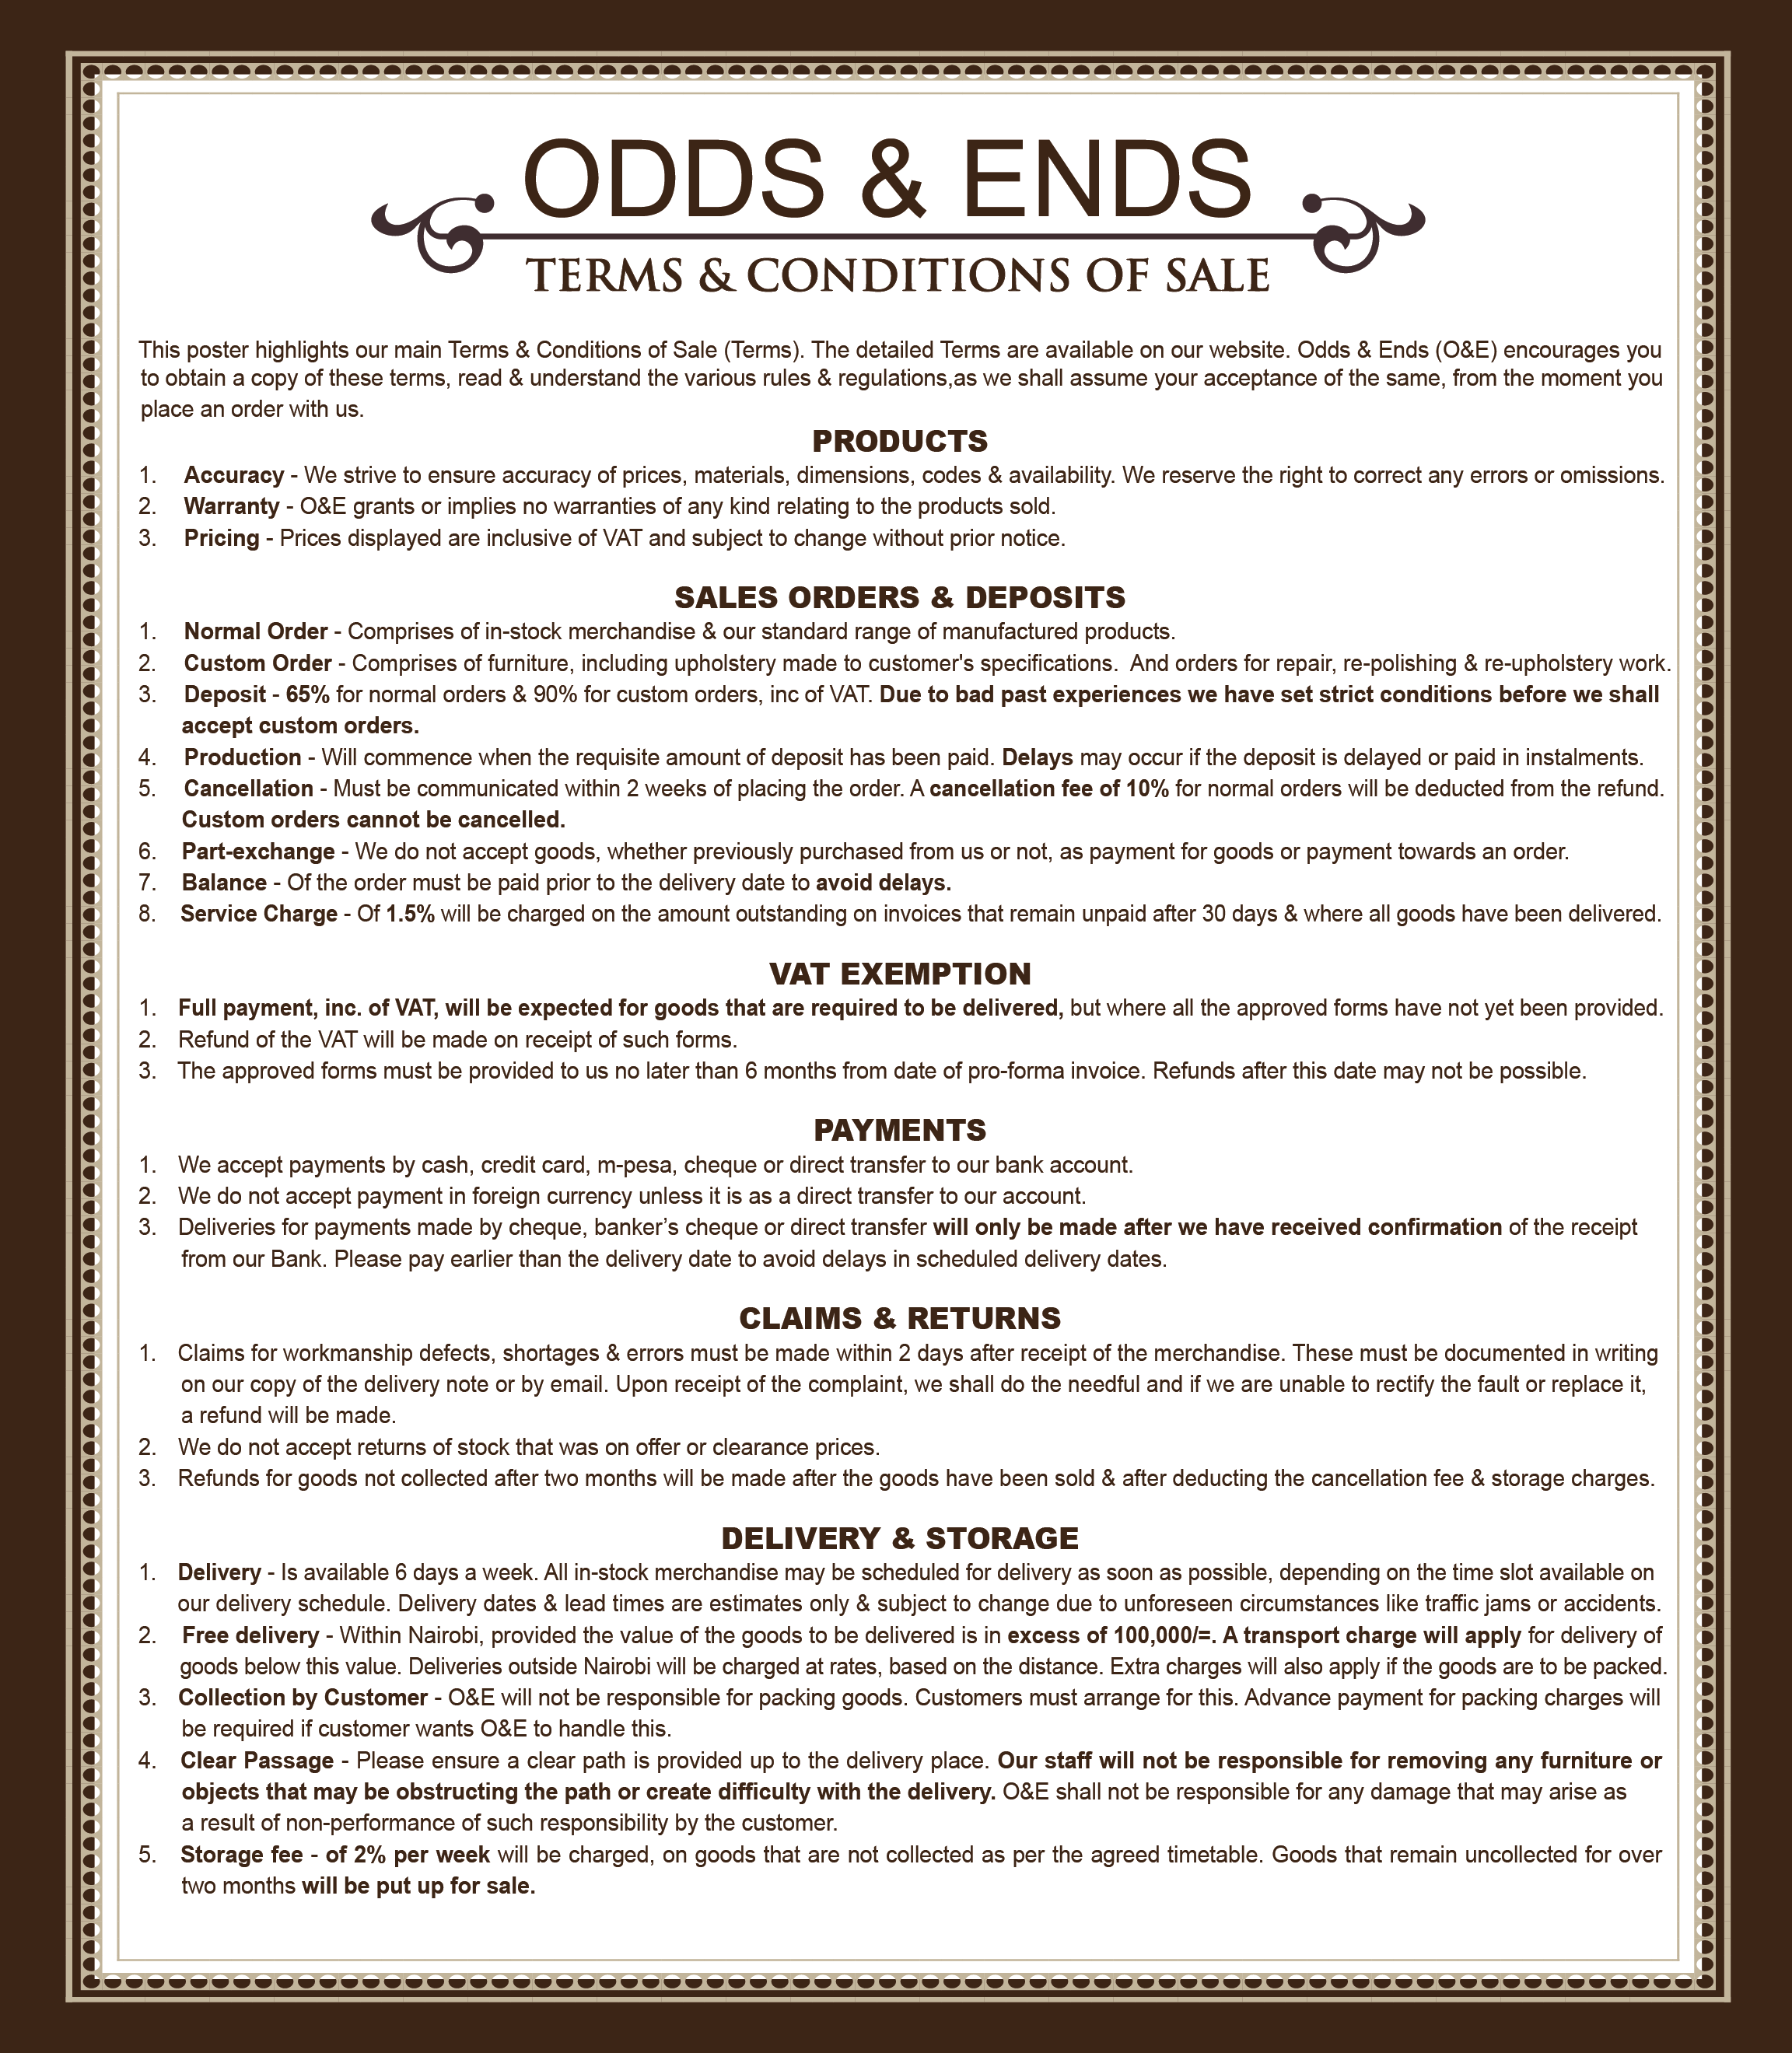 terms-01.png